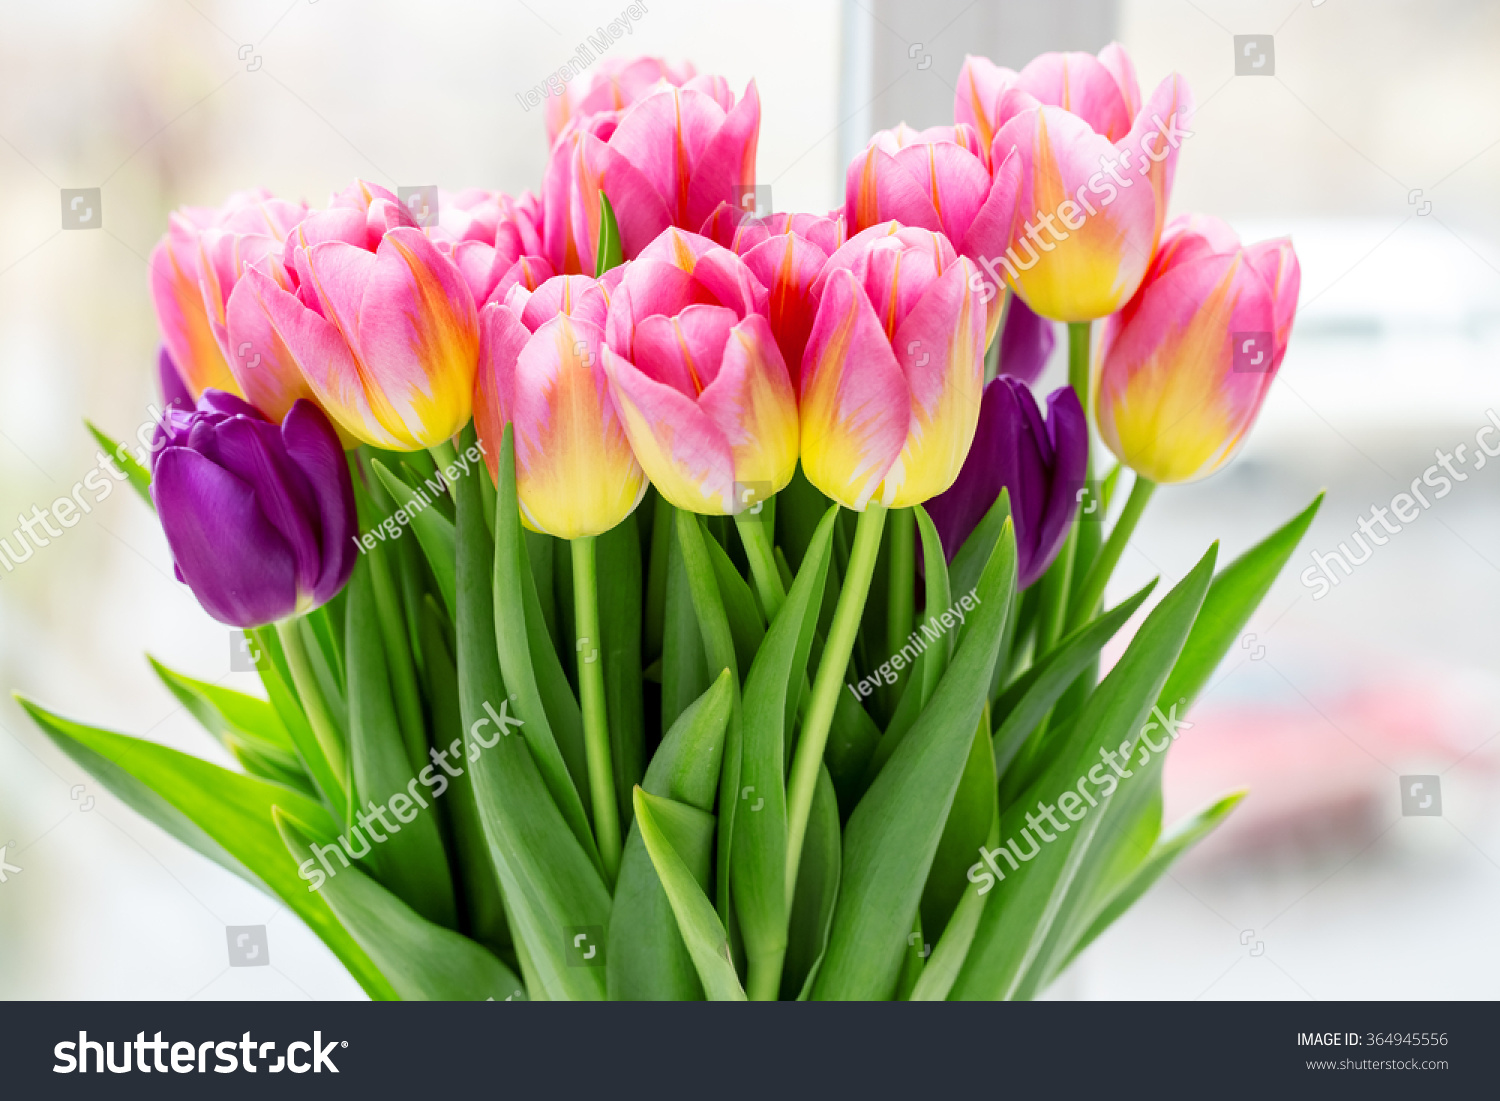 Beautiful pink purple tulips bouquet flowers stock photo 364945556 beautiful pink and purple tulips a bouquet of flowers for march 8 or valentines dhlflorist Image collections